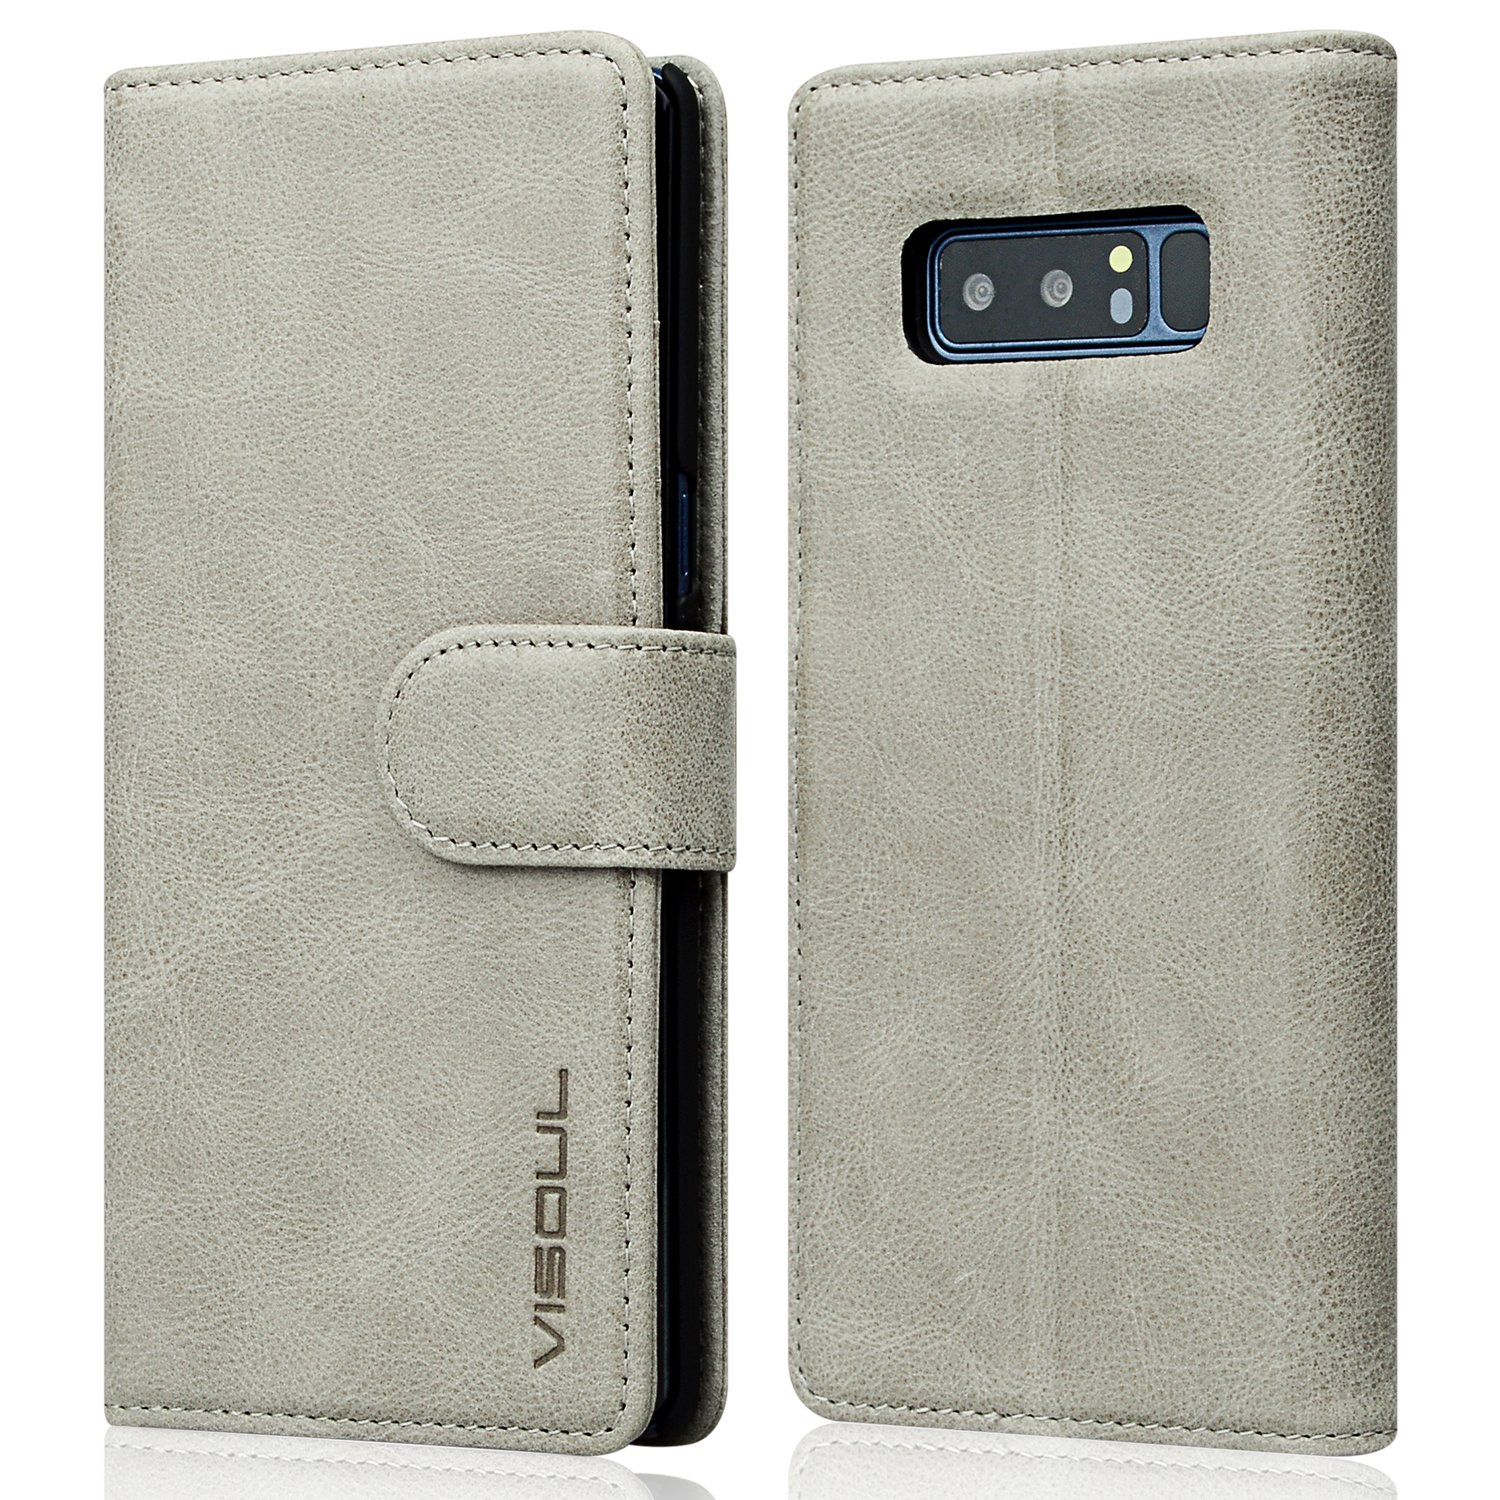 Galaxy Note 8 Wallet Case, Visoul Genuine Leather Luxury Business Folio Book Wallet Case With Kickstand Function, Card Slots & Cash Holder, 【Magnetic Flap】 Case for Samsung Galaxy Note 8 - Grey